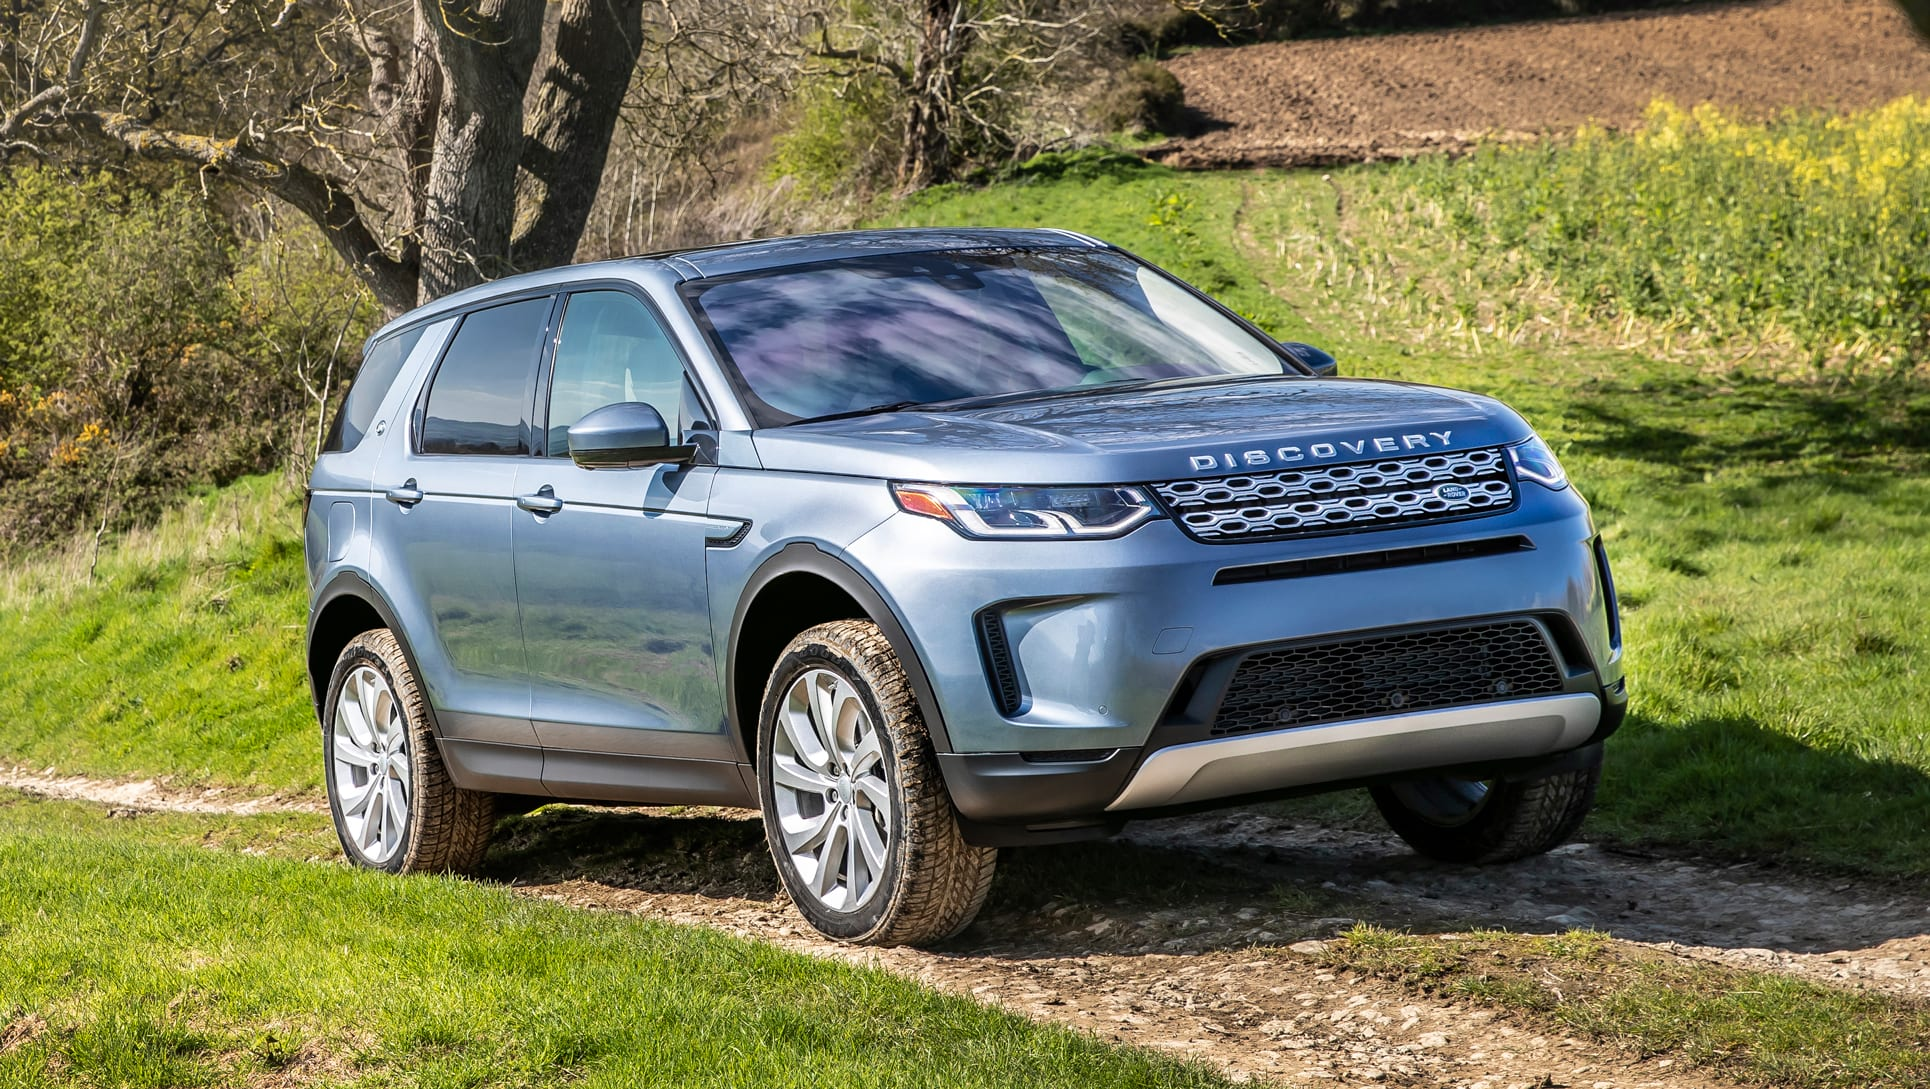 2020 Land Rover Range Rover Sport: Changes, Equipment, Price >> Land Rover Discovery Sport 2020 Facelift Revealed Car News